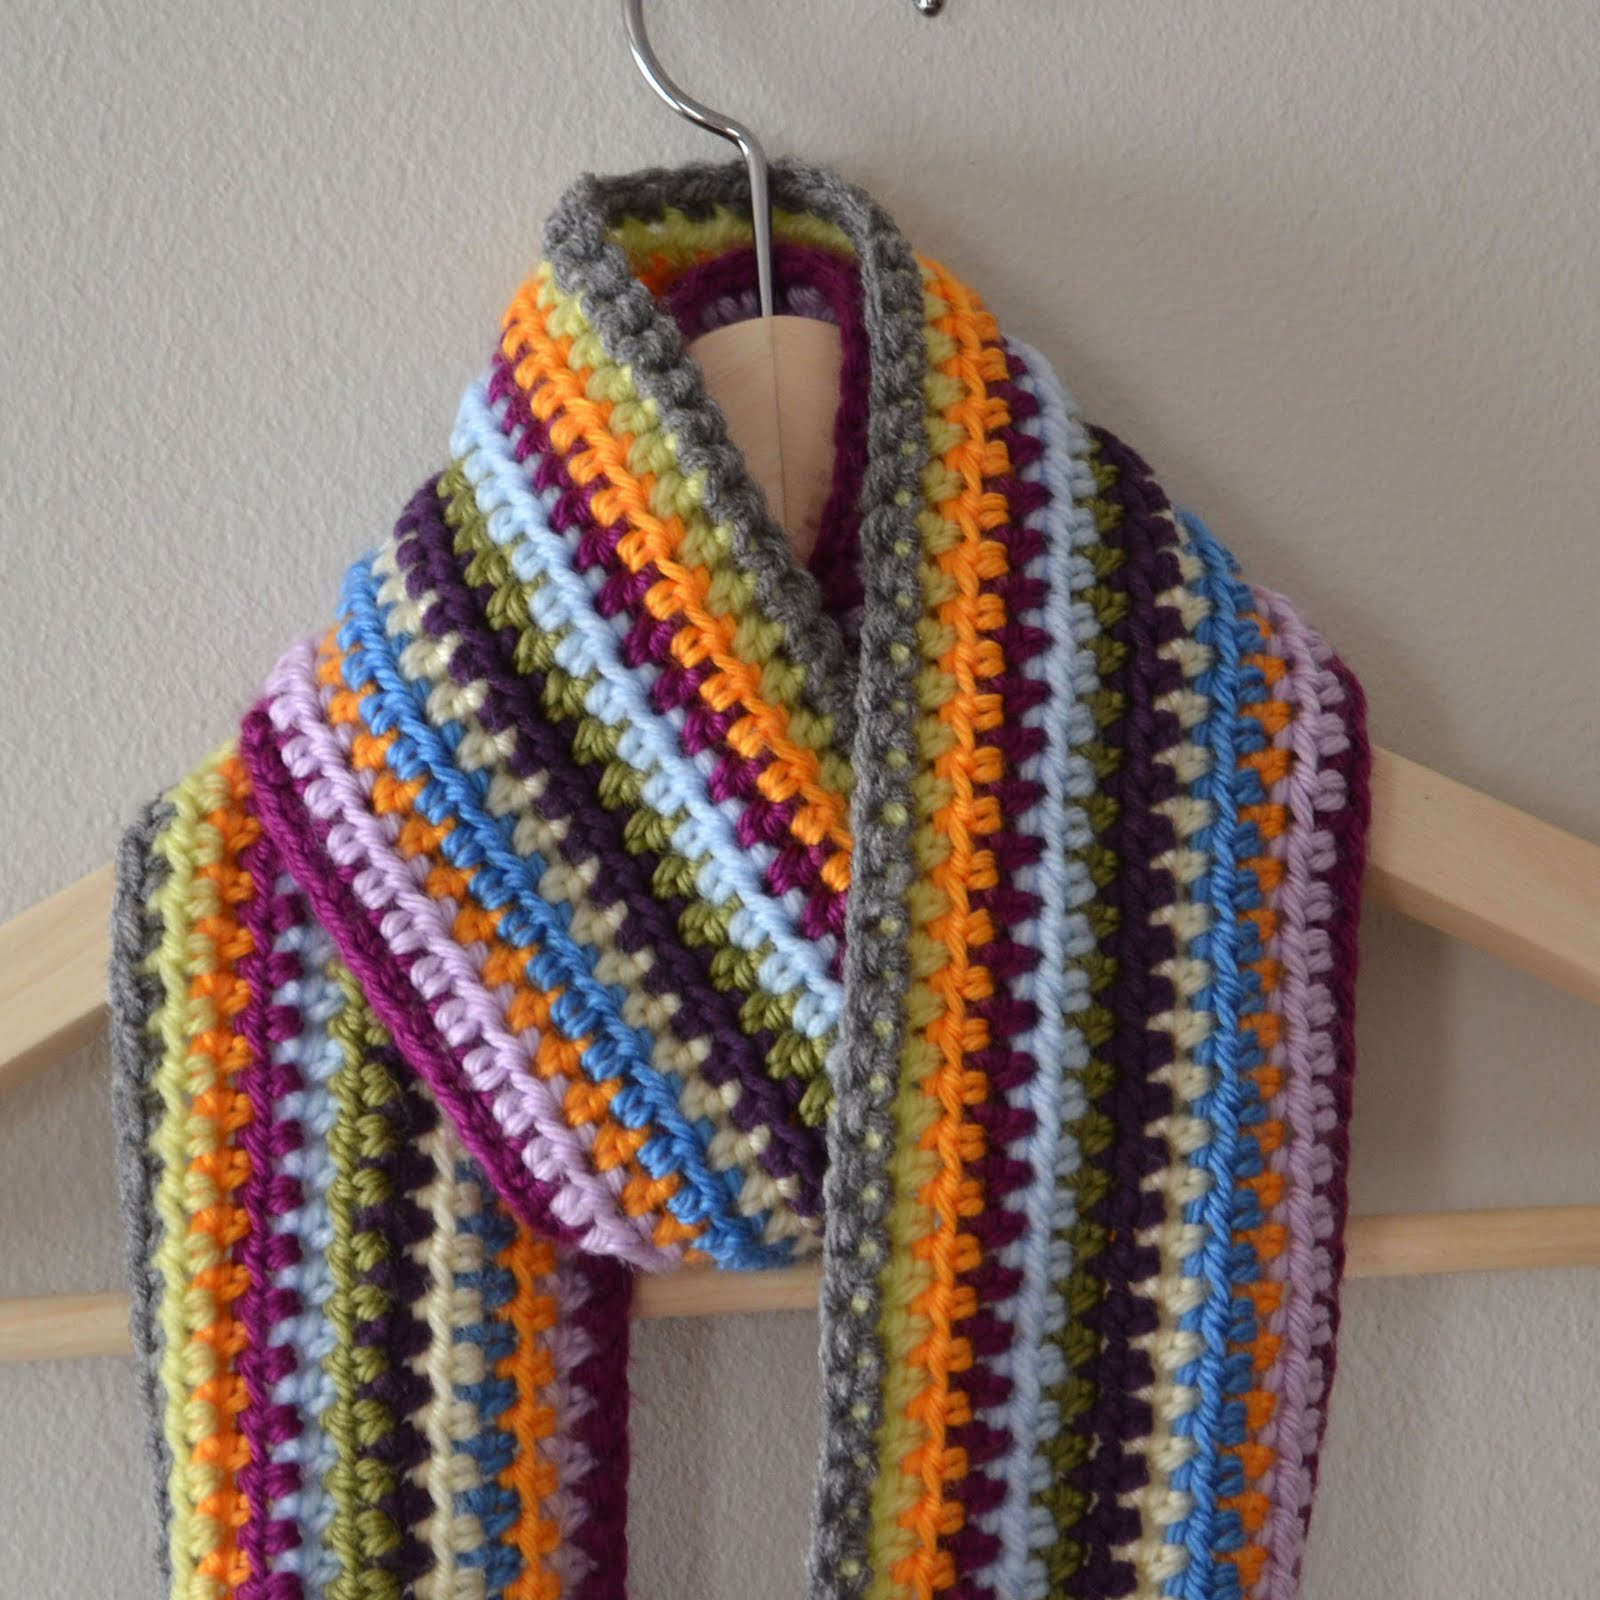 Crochet Patterns To Use Up Yarn : Crochet in Color: Scrapadelic Scarf